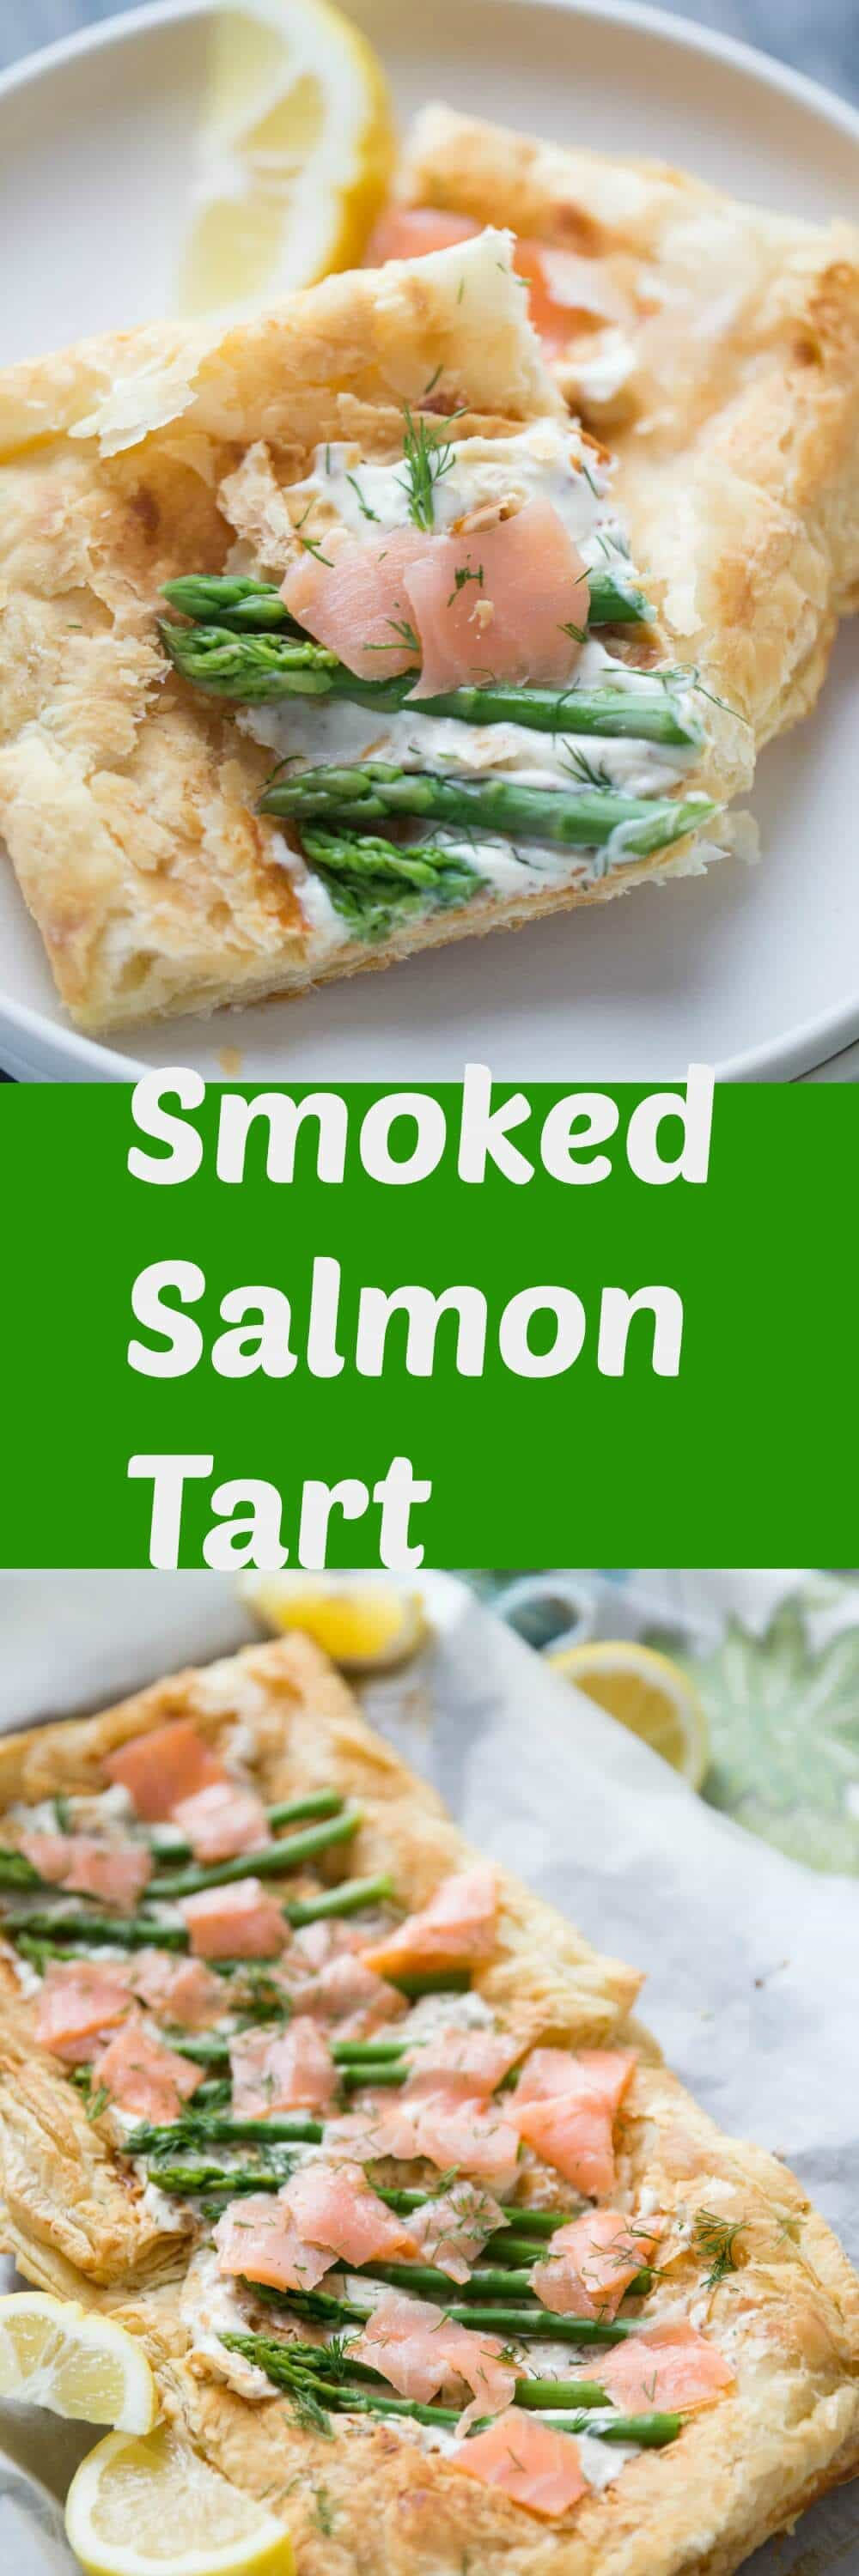 This recipe for asparagus and smoked salmon tart is impressive yet simple!  This light and flaky dish is a light and tasty dish that is perfect for spring!